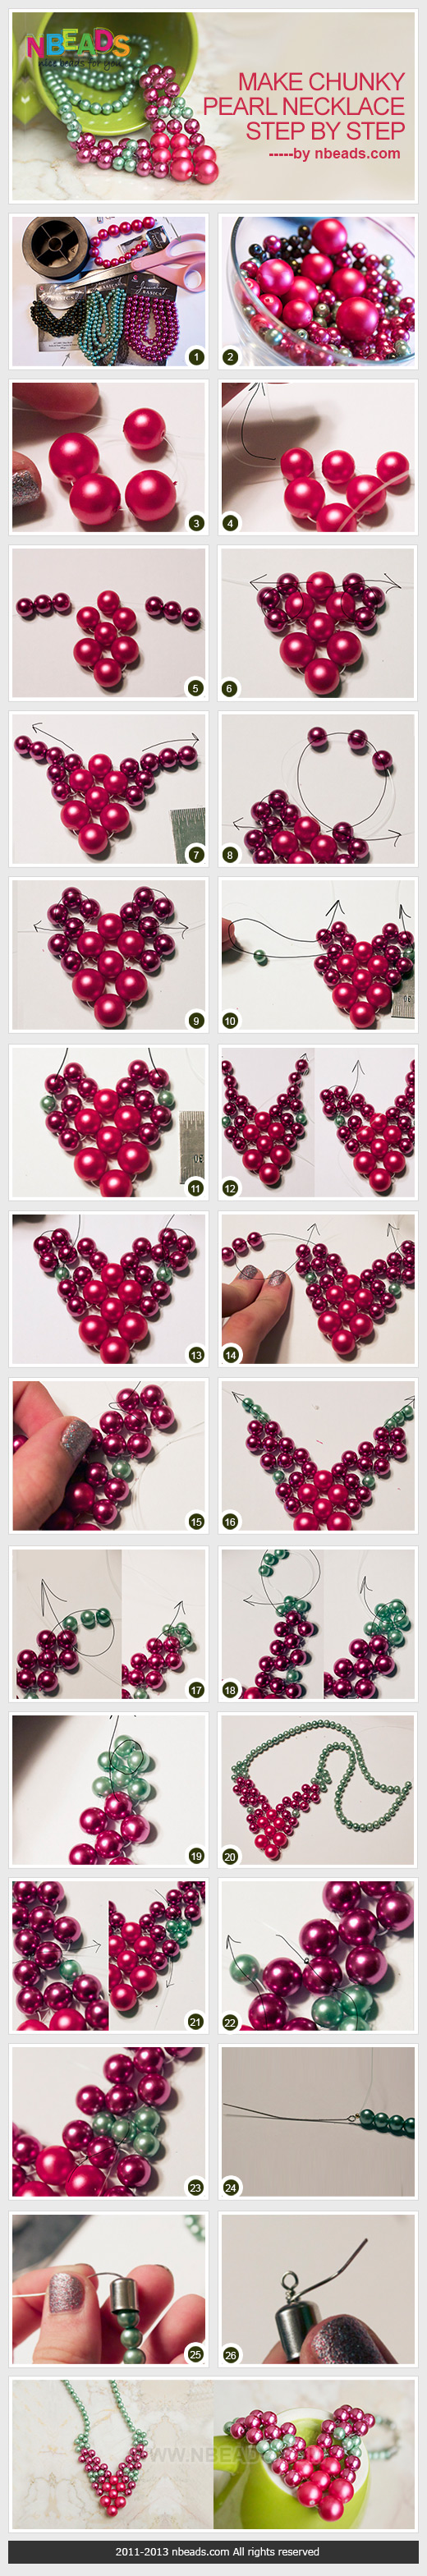 Make Chunky Pearl Necklace Step By Step – Nbeads